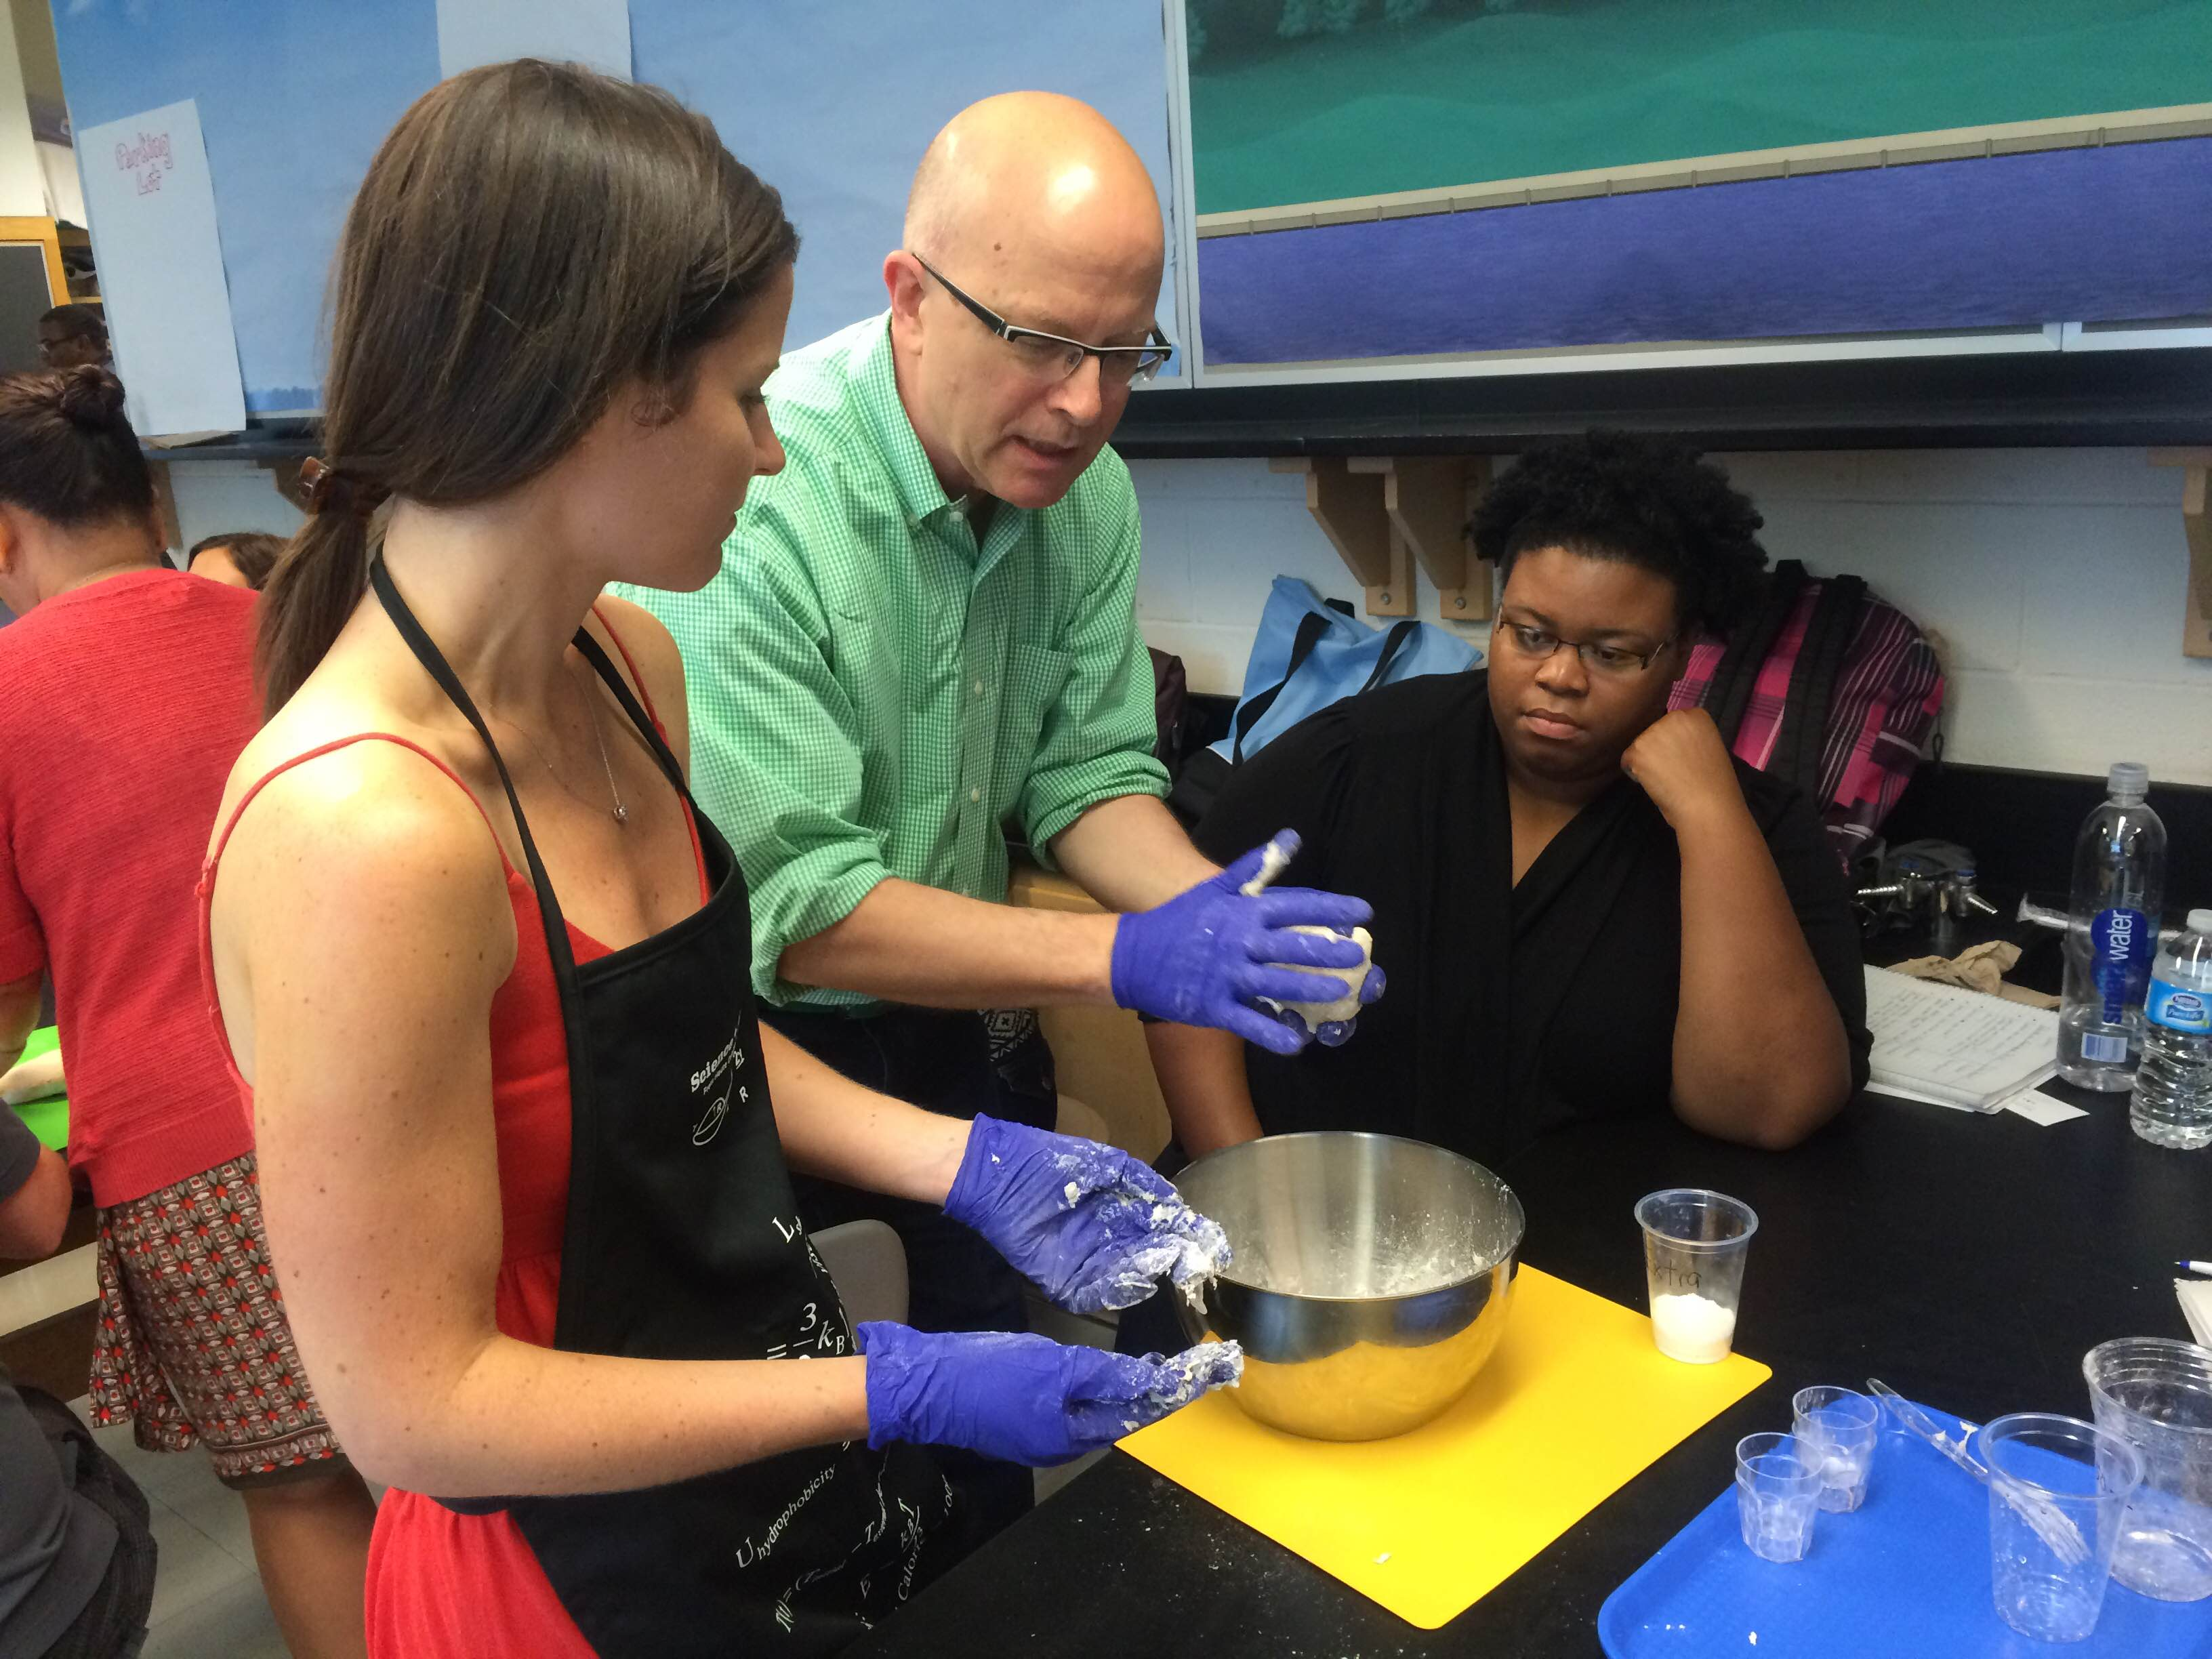 Former White House pastry chef Bill Yosses shows teachers how to make yeast.